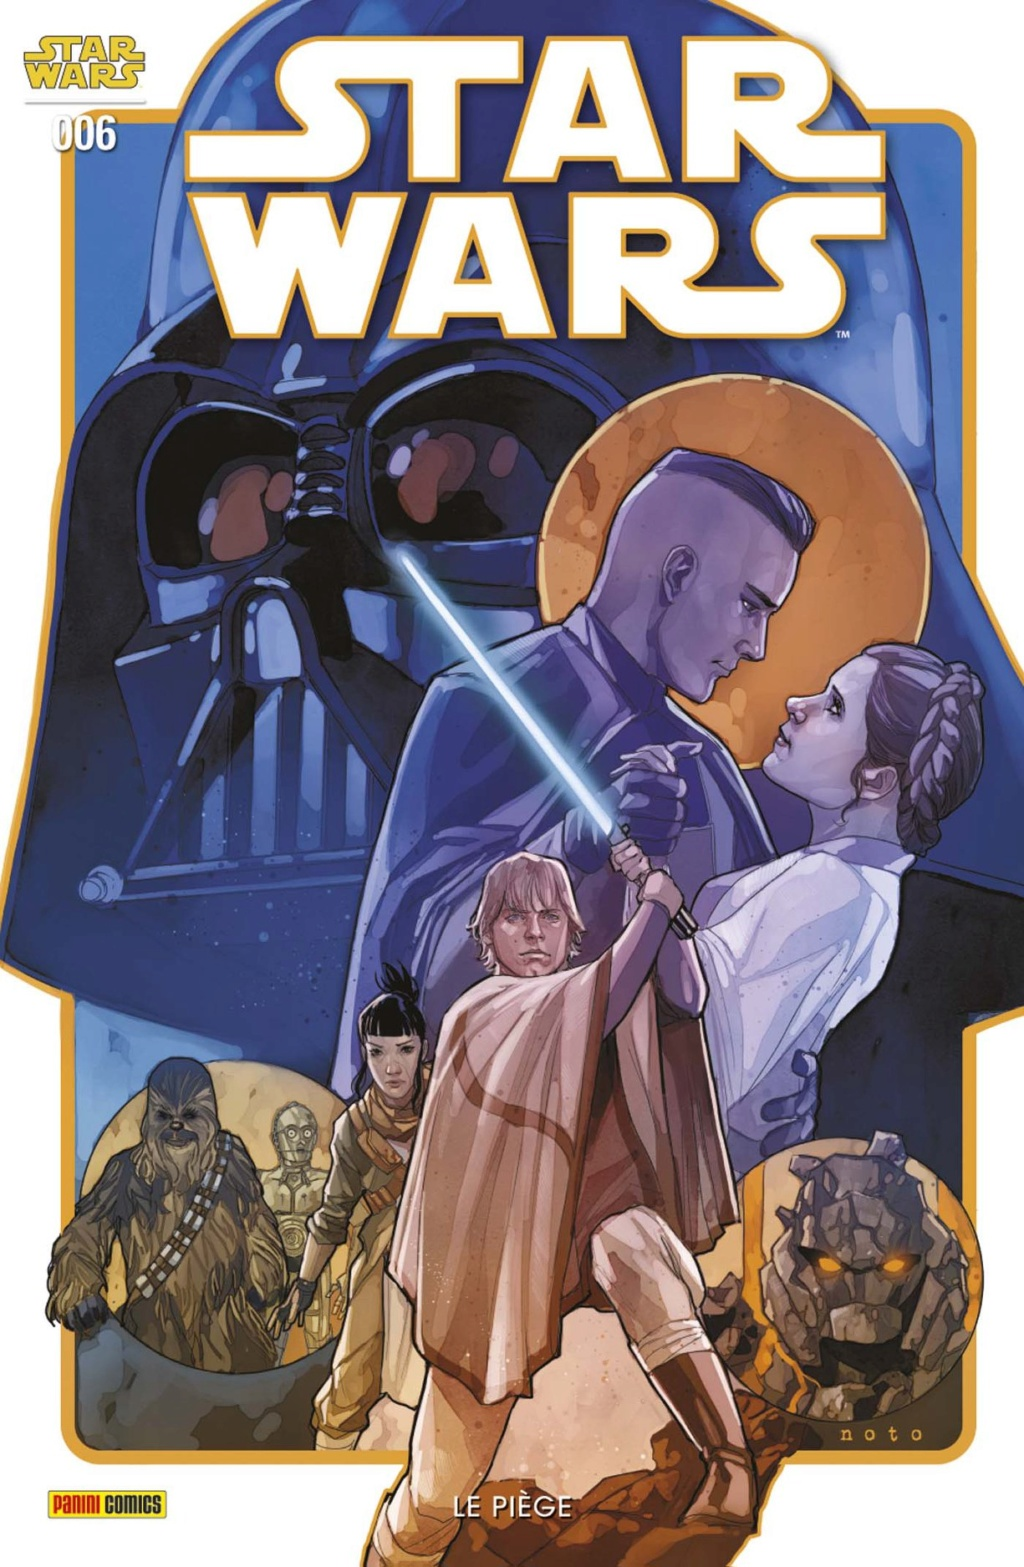 SOFTCOVER STAR WARS #06 V4 (39) PANINI - SEPTEMBRE 2020 0629